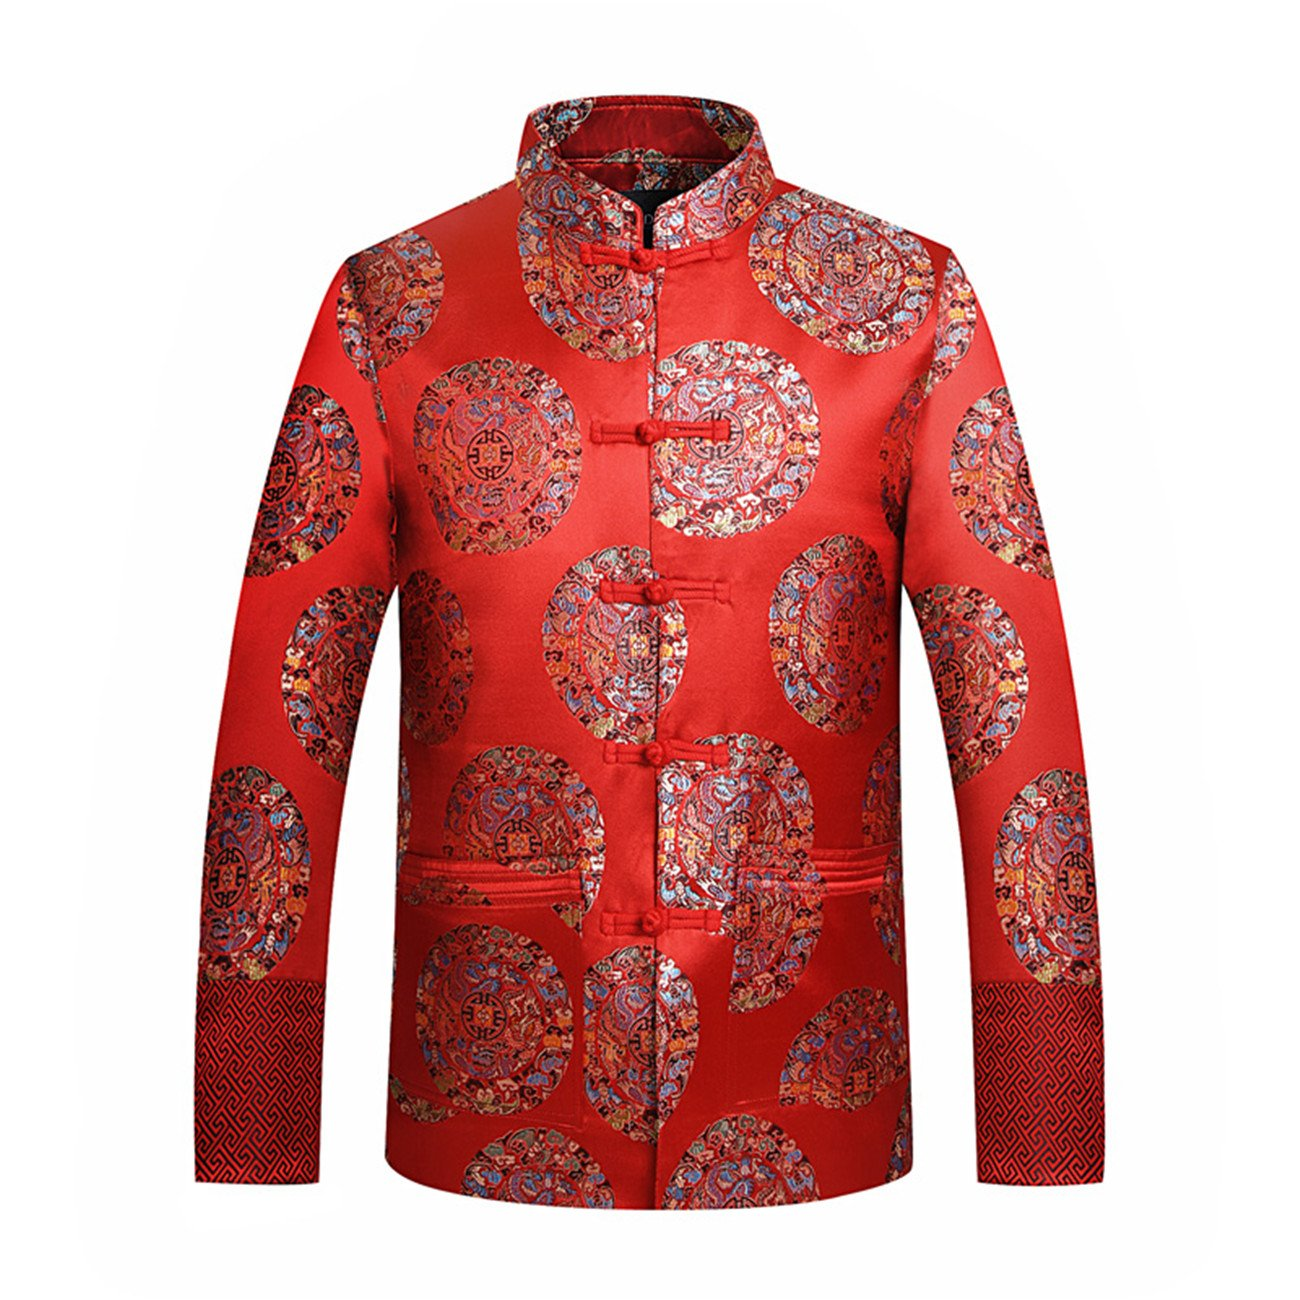 Men's O-neck Long Sleeve Stand Collar Chinese Style Disk Buckle Embroidery TangJackets(L,red) by JJCat